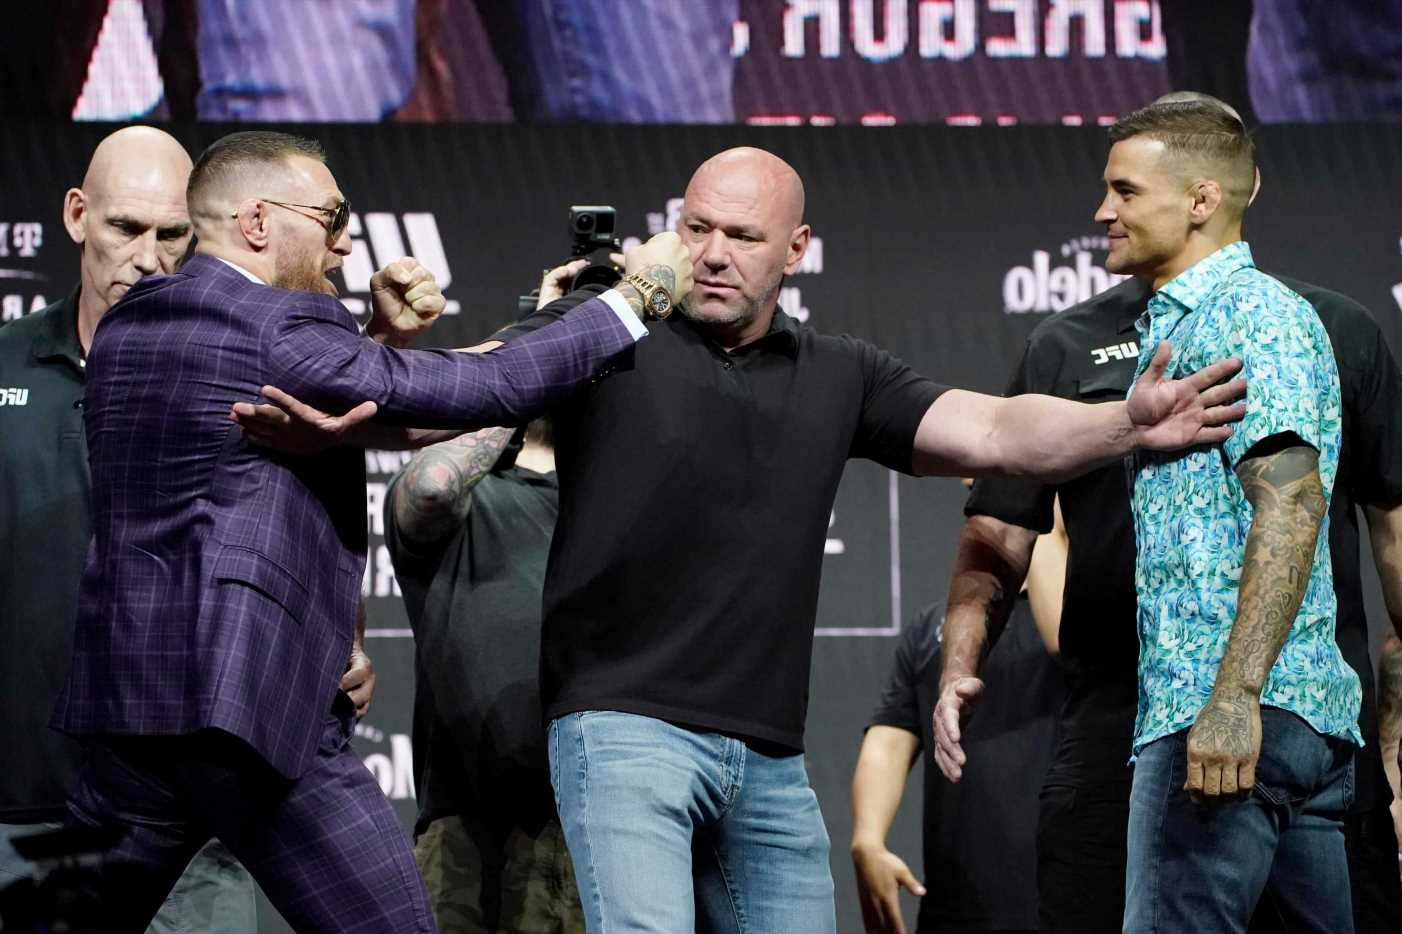 Conor McGregor back to bad boy ways after trying to KICK Dustin Poirier and threatening to take head off at UFC presser